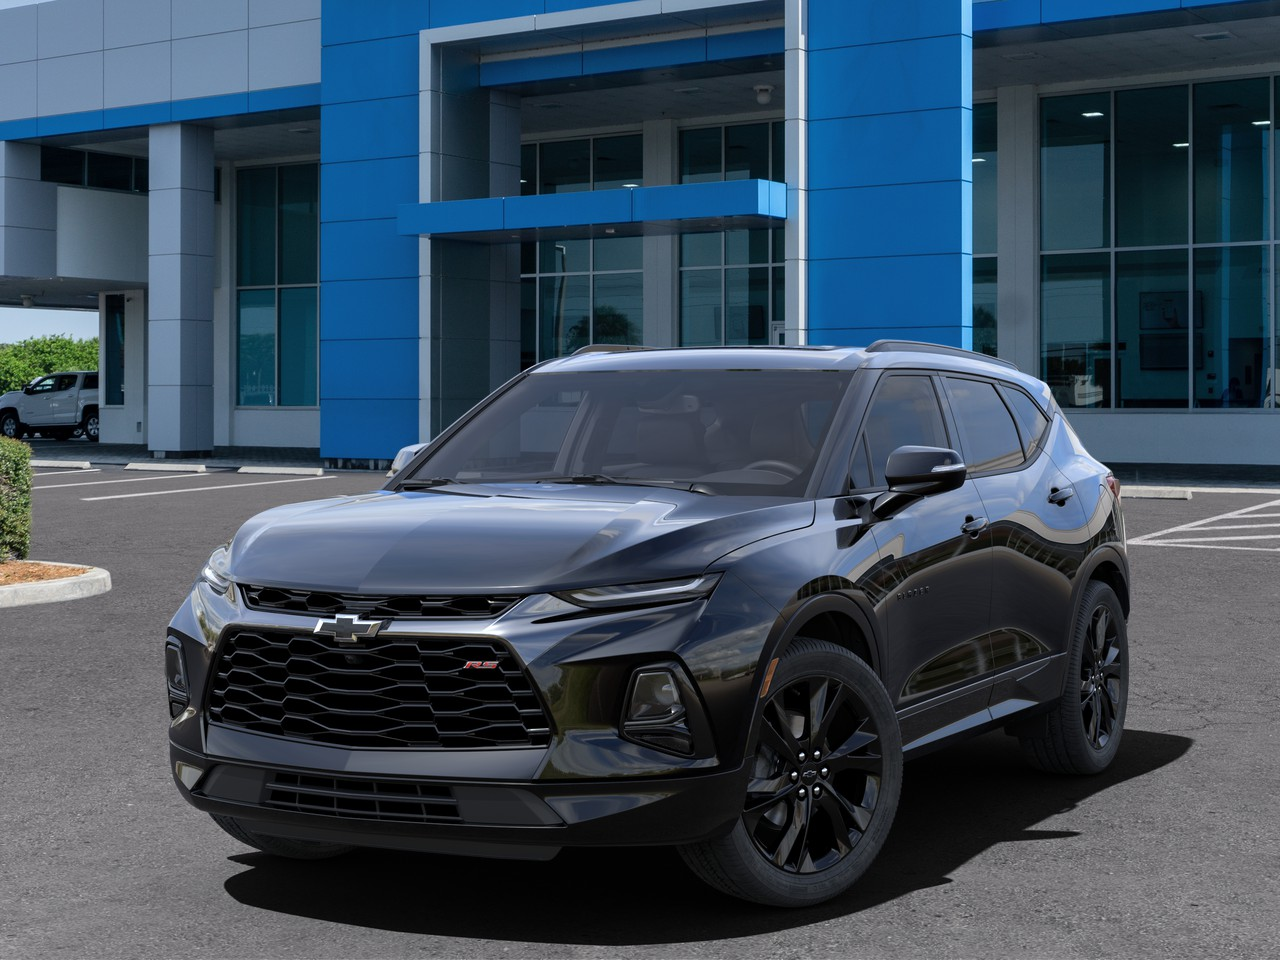 New 2021 Chevrolet Blazer RS FRONT WHEEL DRIVE SUV